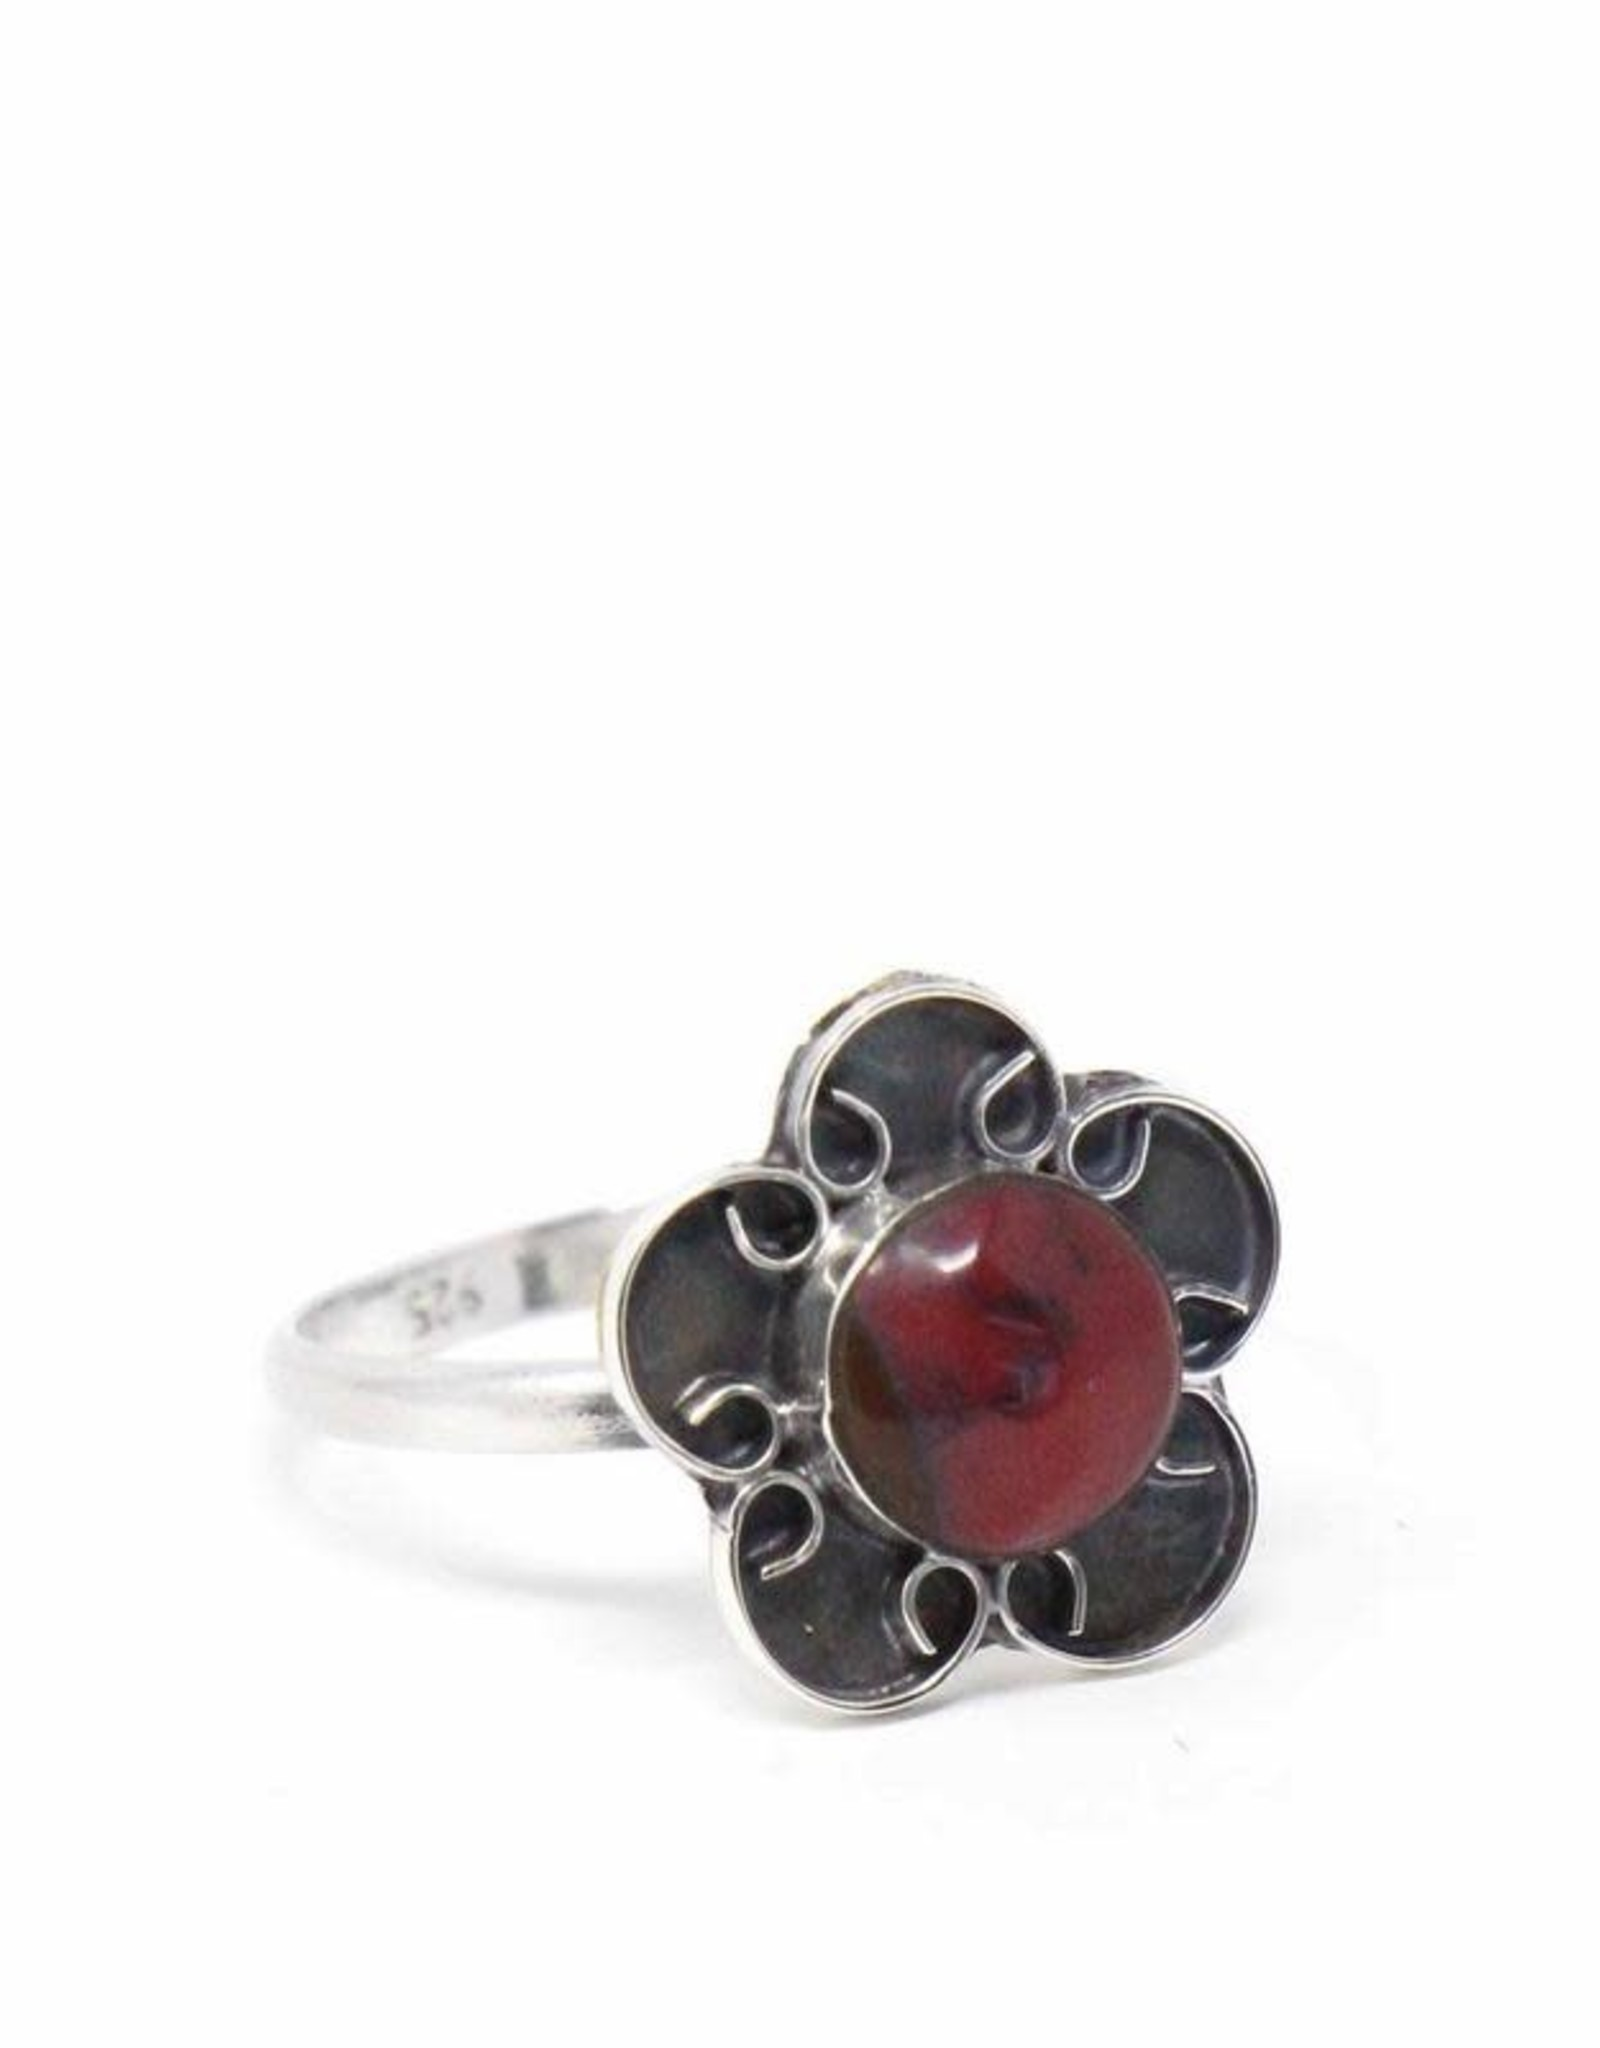 Global Crafts Ring, Mexican Taxco Red Rosette Silver-Plate